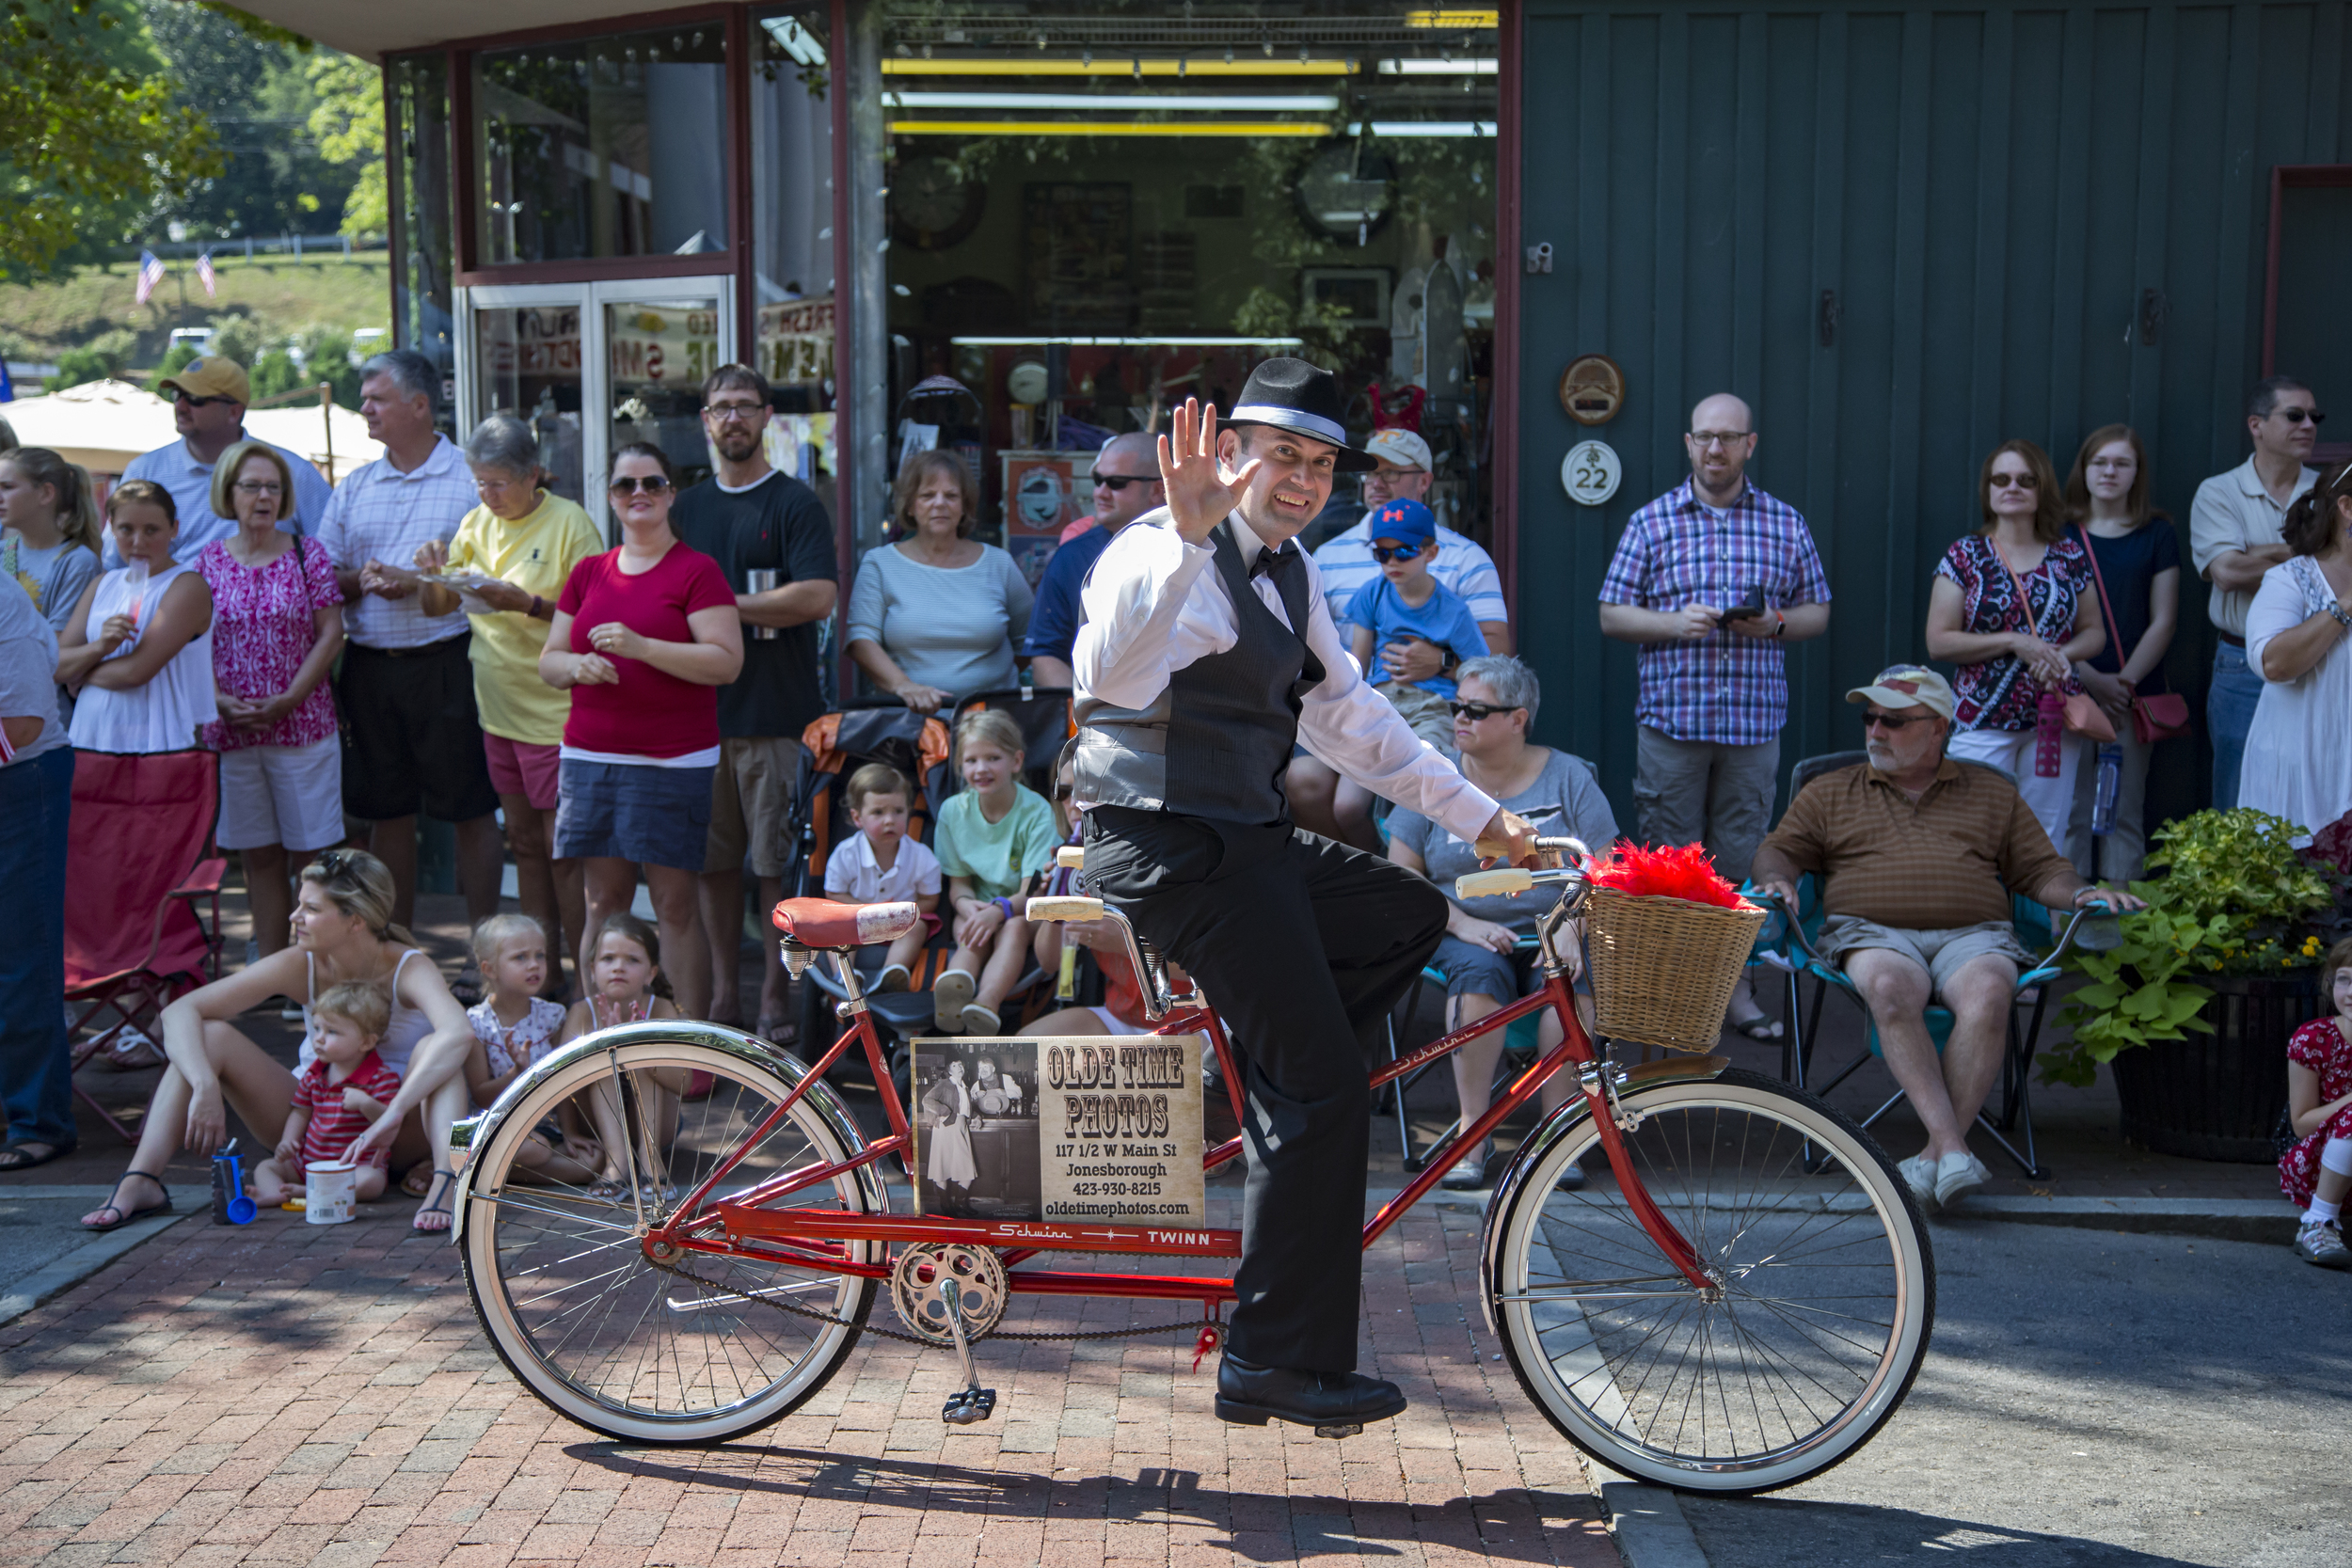 Matt from Olde Time Photos in Jonesborough, Tennessee, rides a bicycle built for two during the parade.